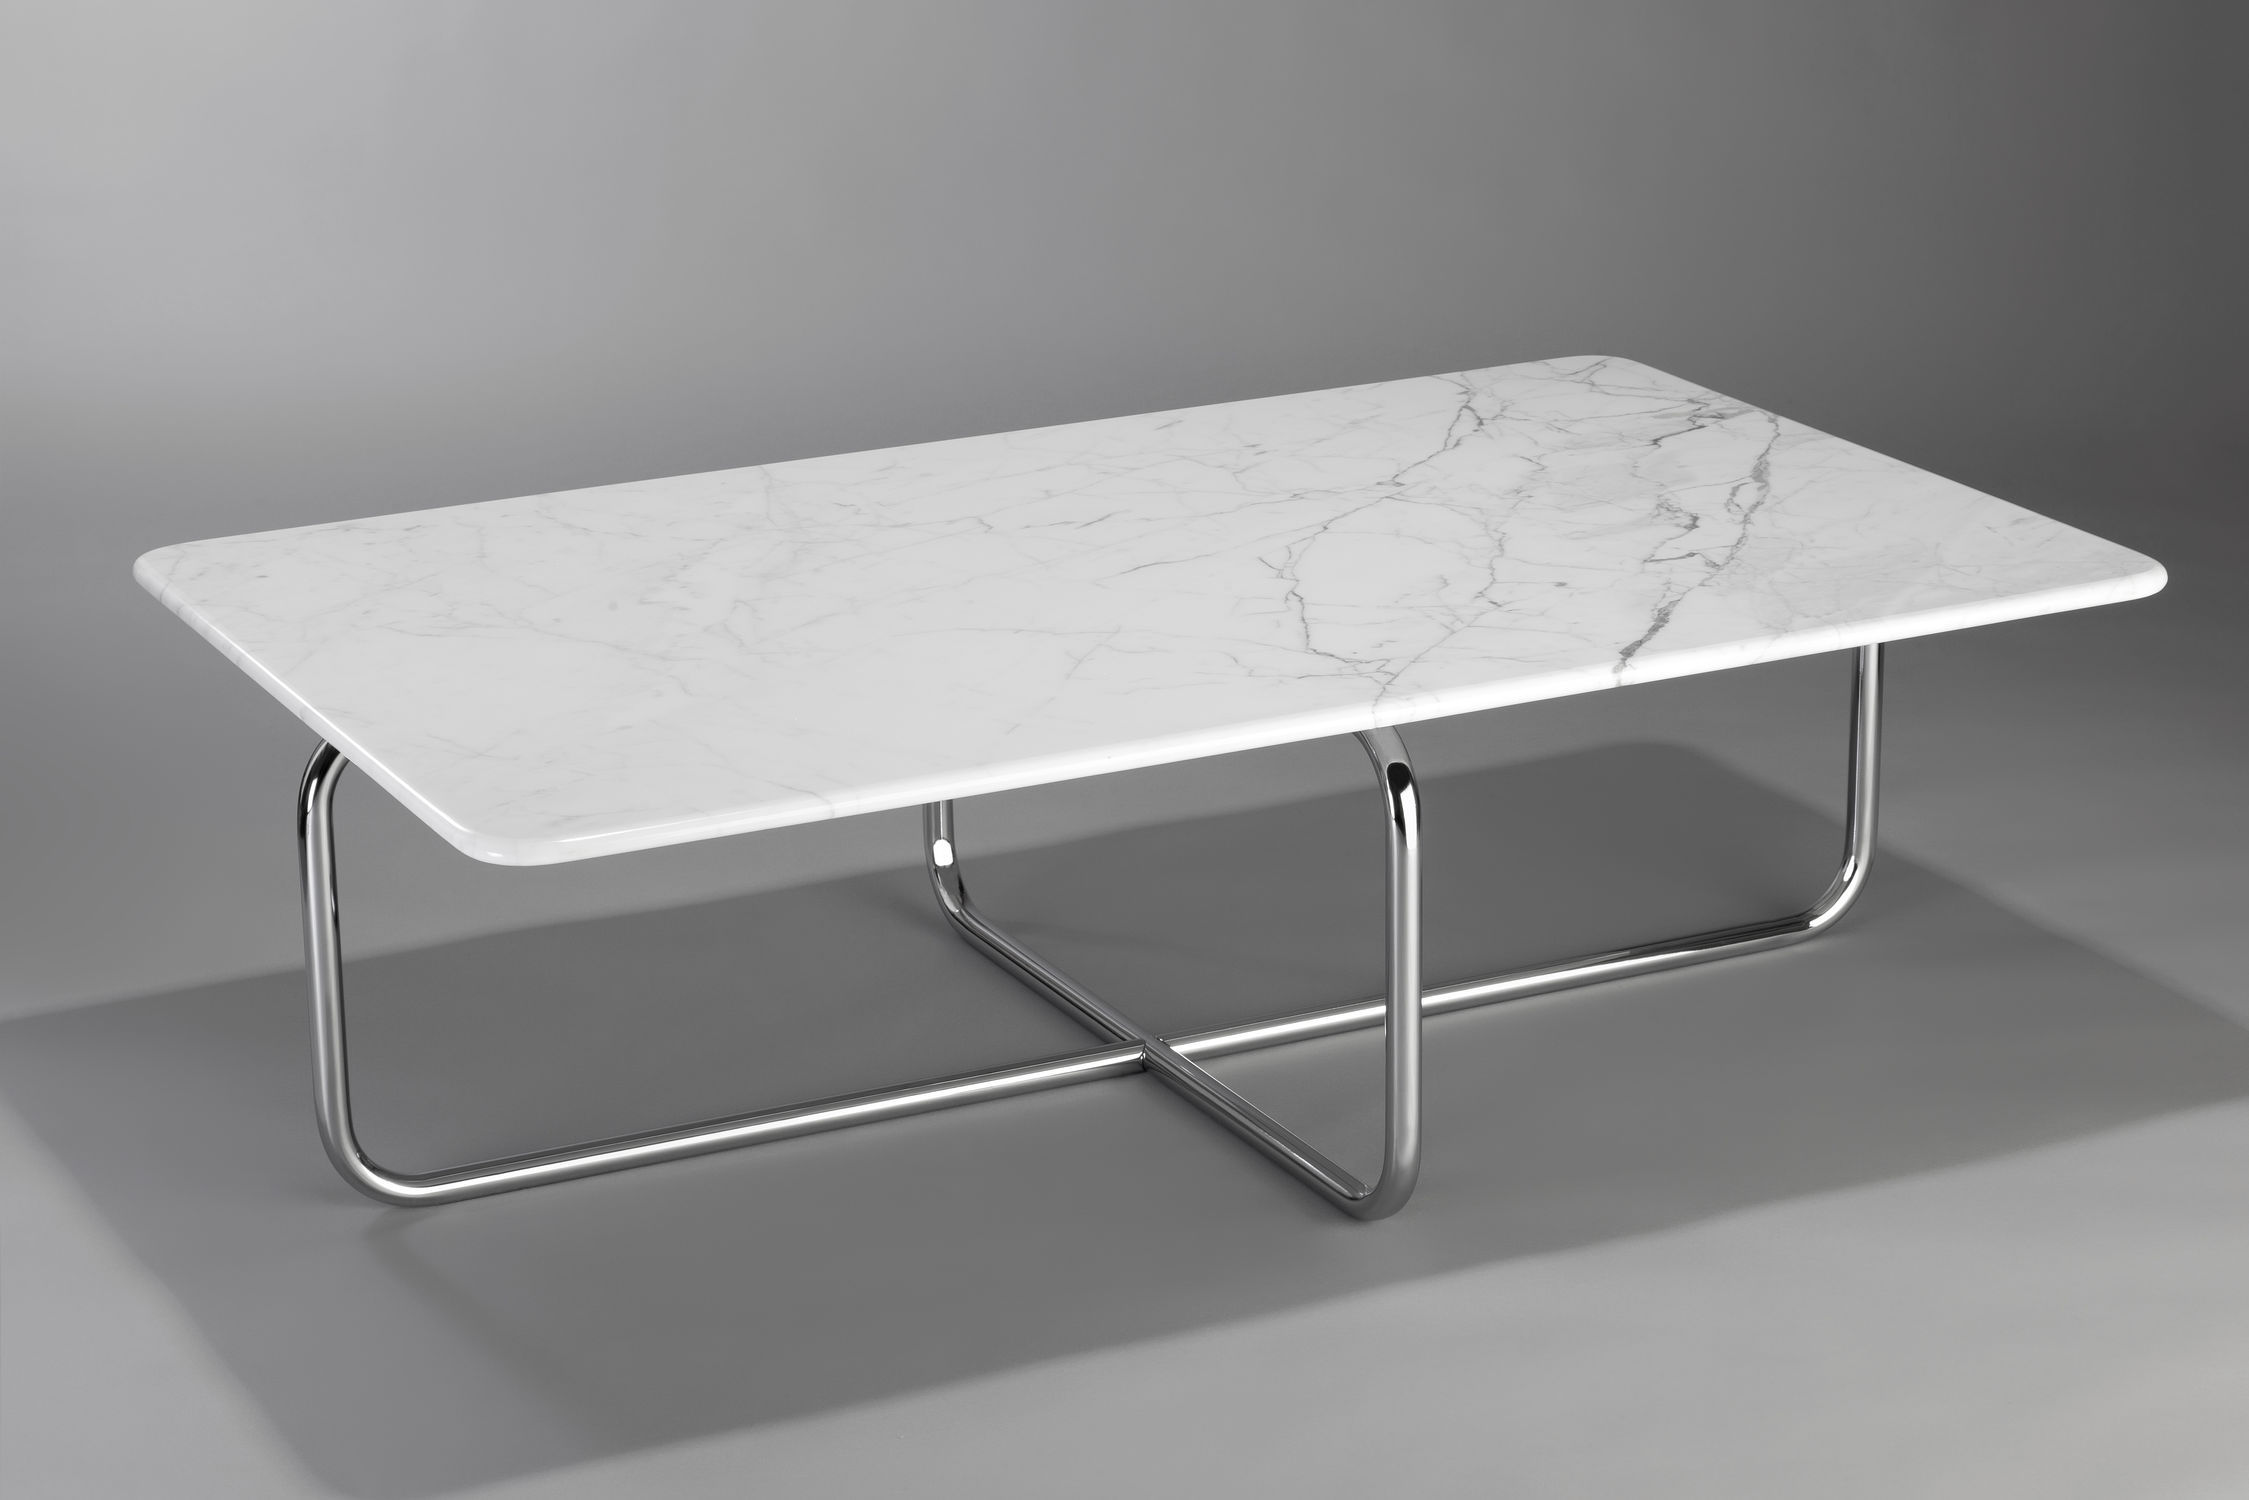 149974-9622247 Meilleur De De Table Basse Italienne Design